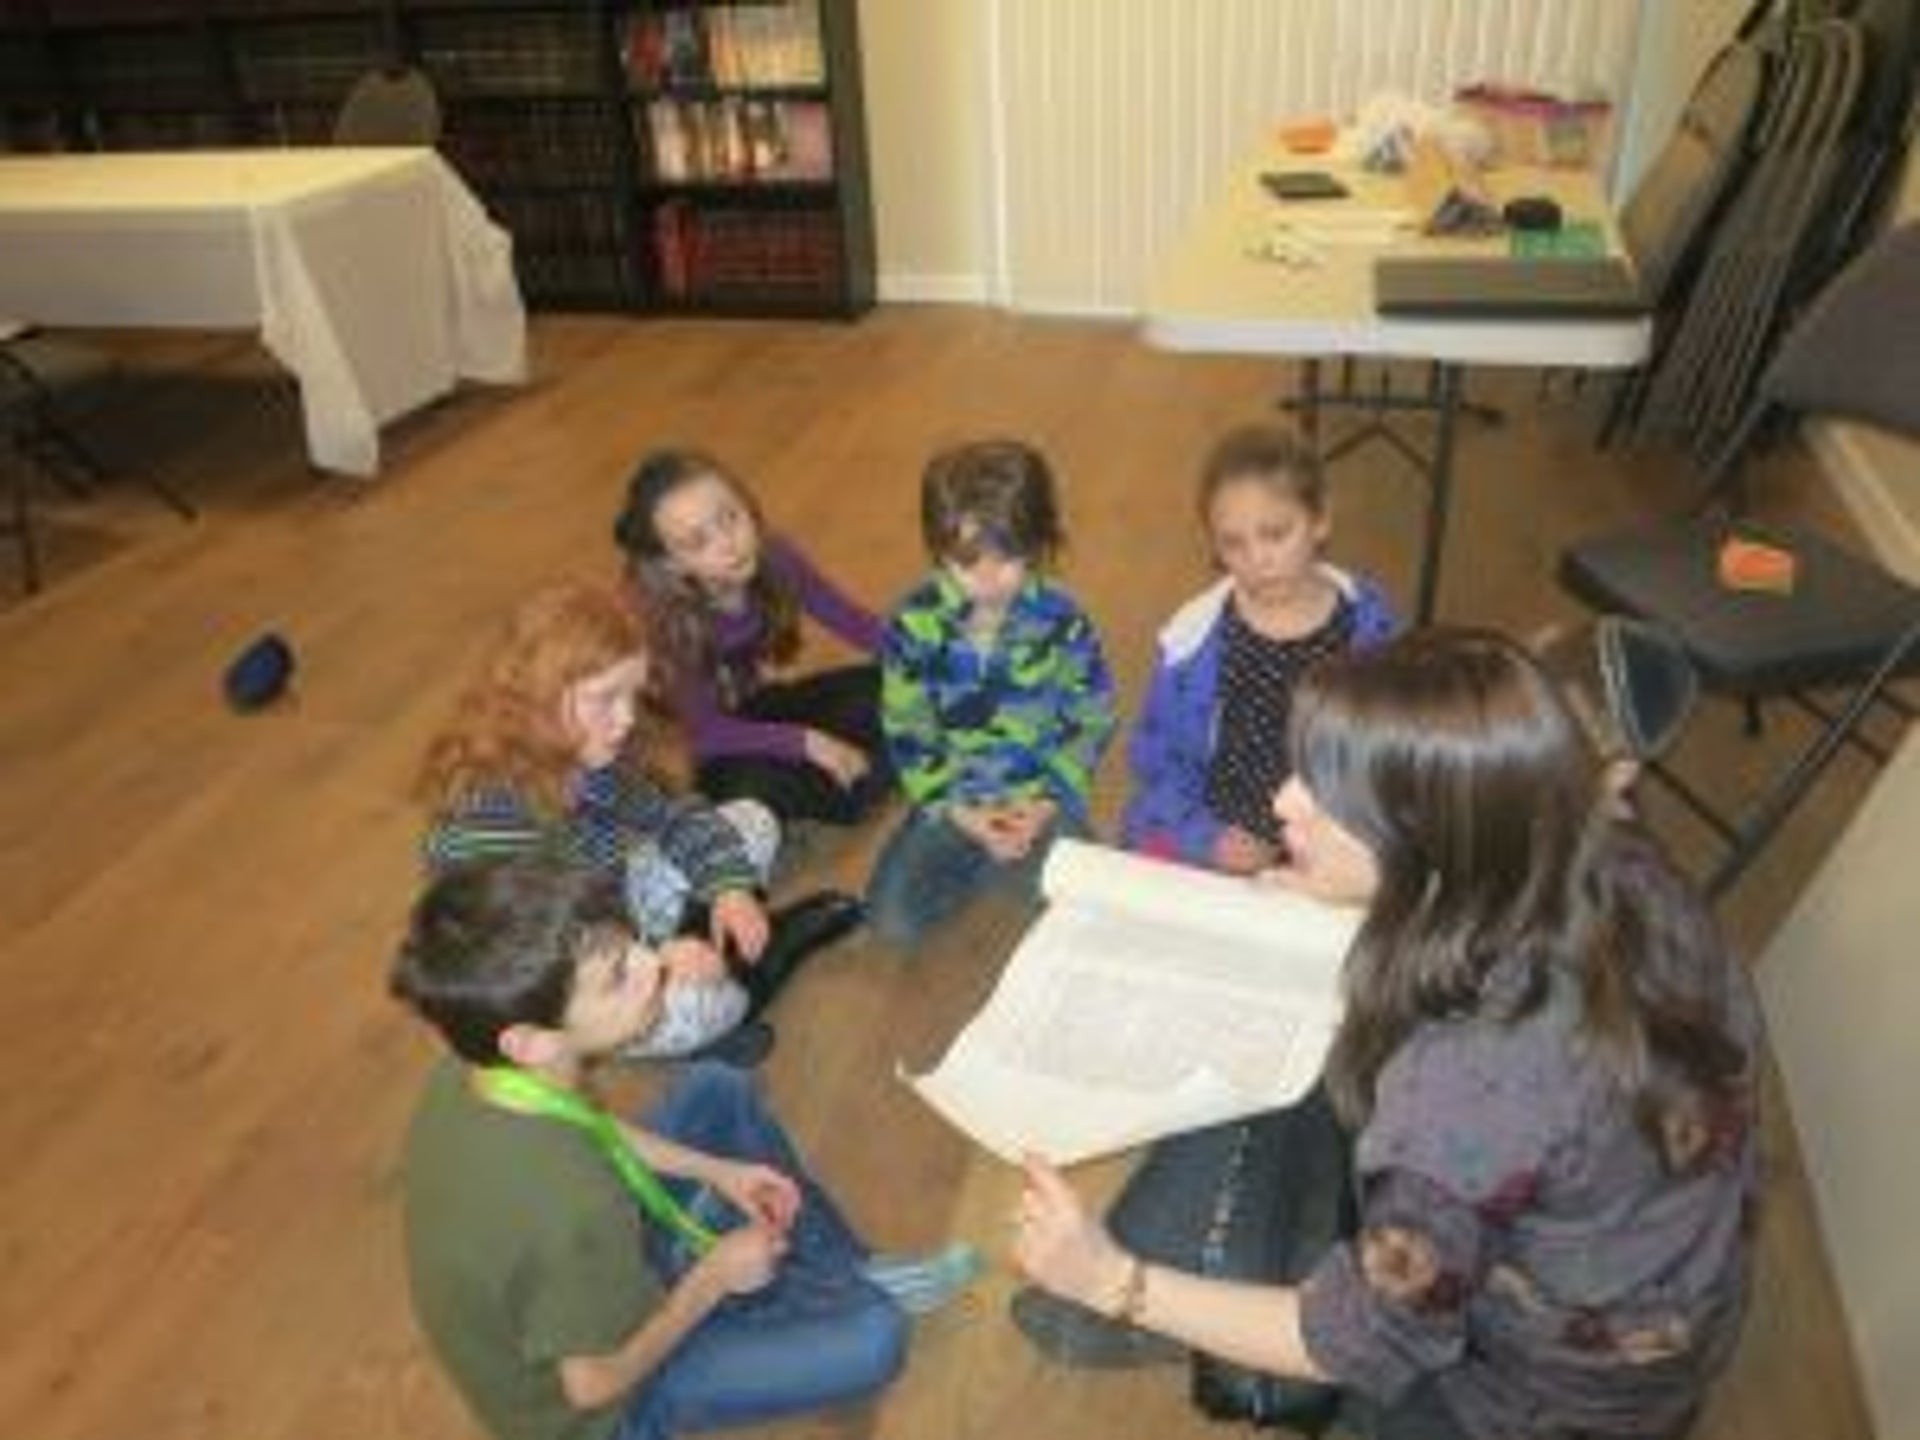 A Hebrew-school class in Nanaimo, British Columbia. Five young children sit on the floor in a circle facing a teacher, also sitting on the floor, who holds a scrolled, printed paper in her hands.